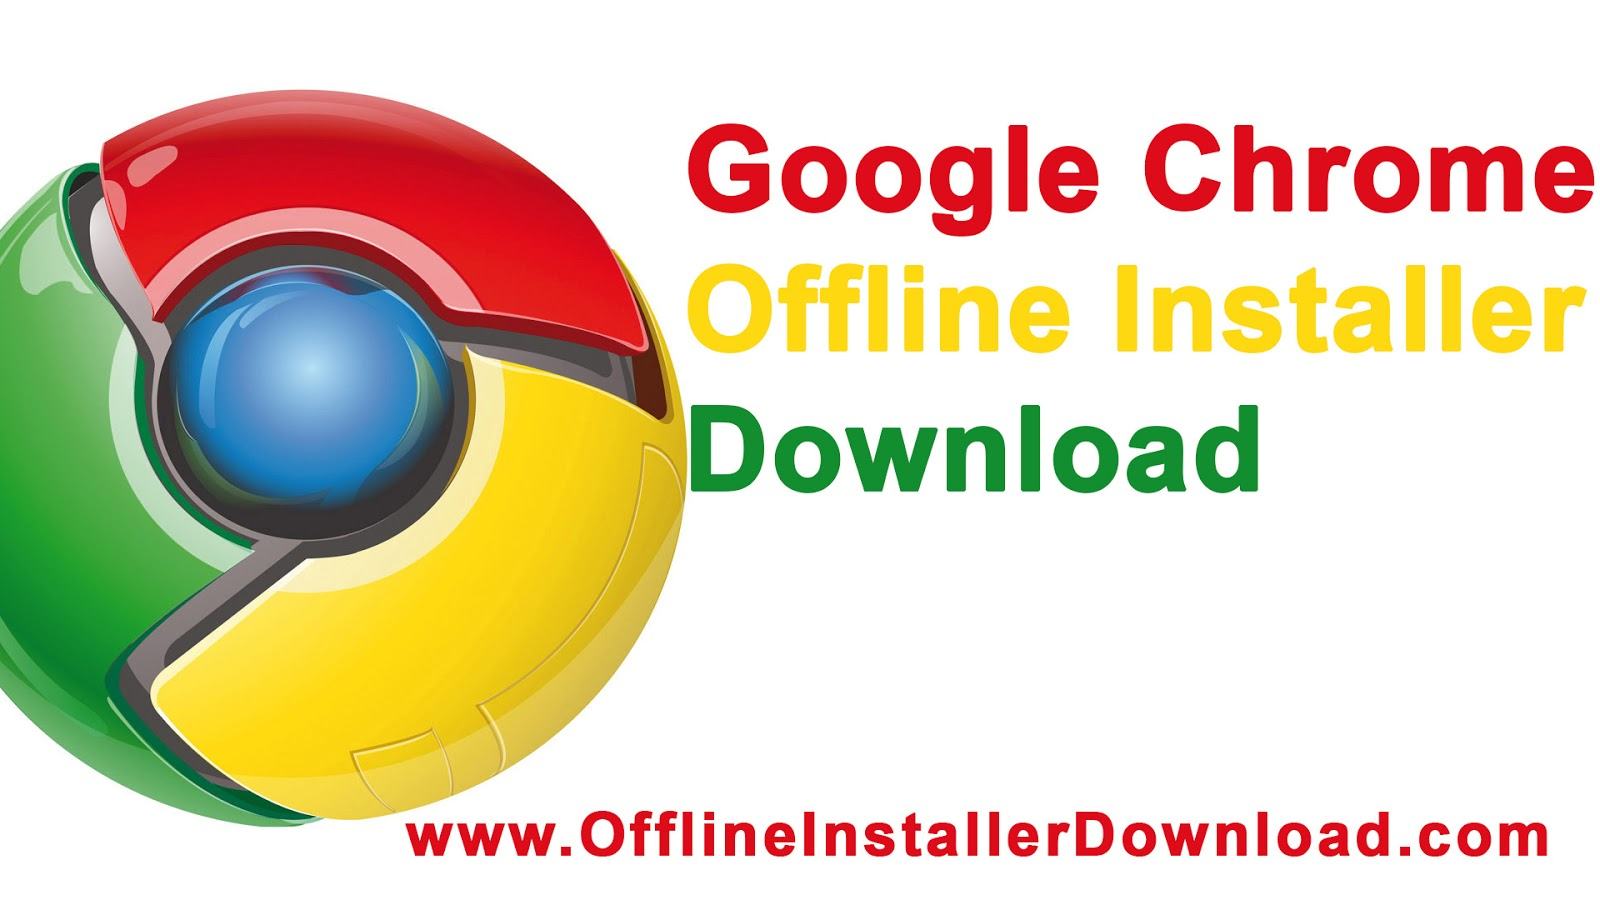 google chrome version 30 offline installer